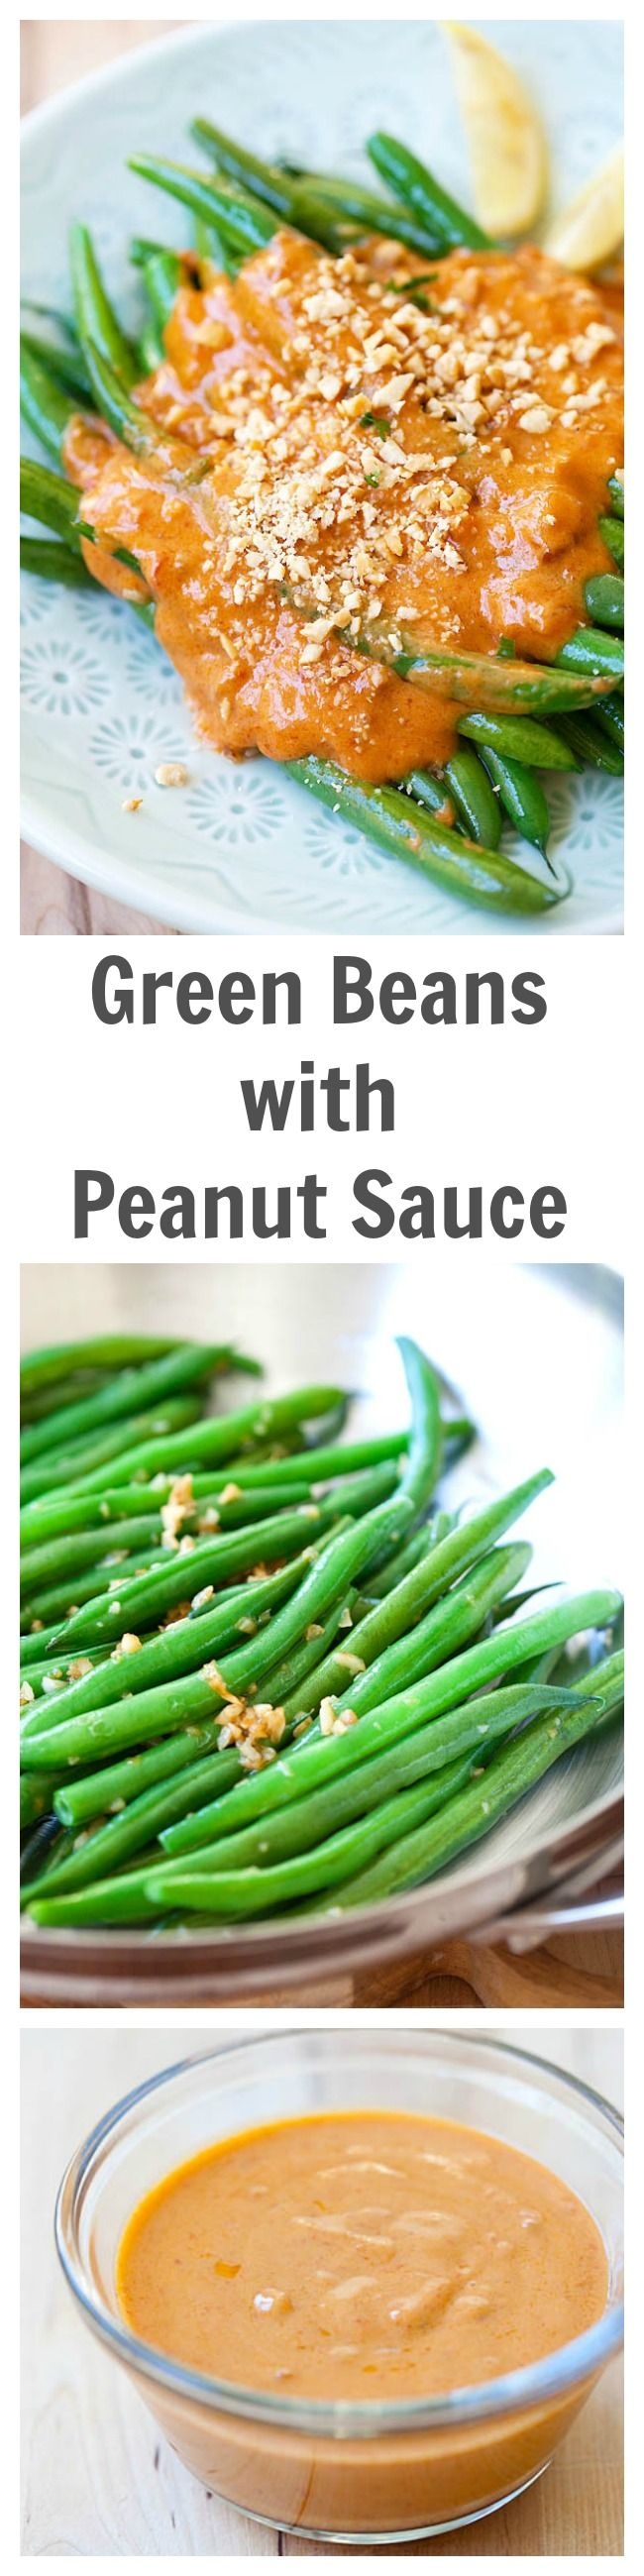 peanut sauce. Saute green beans with garlic and top them with spicy ...